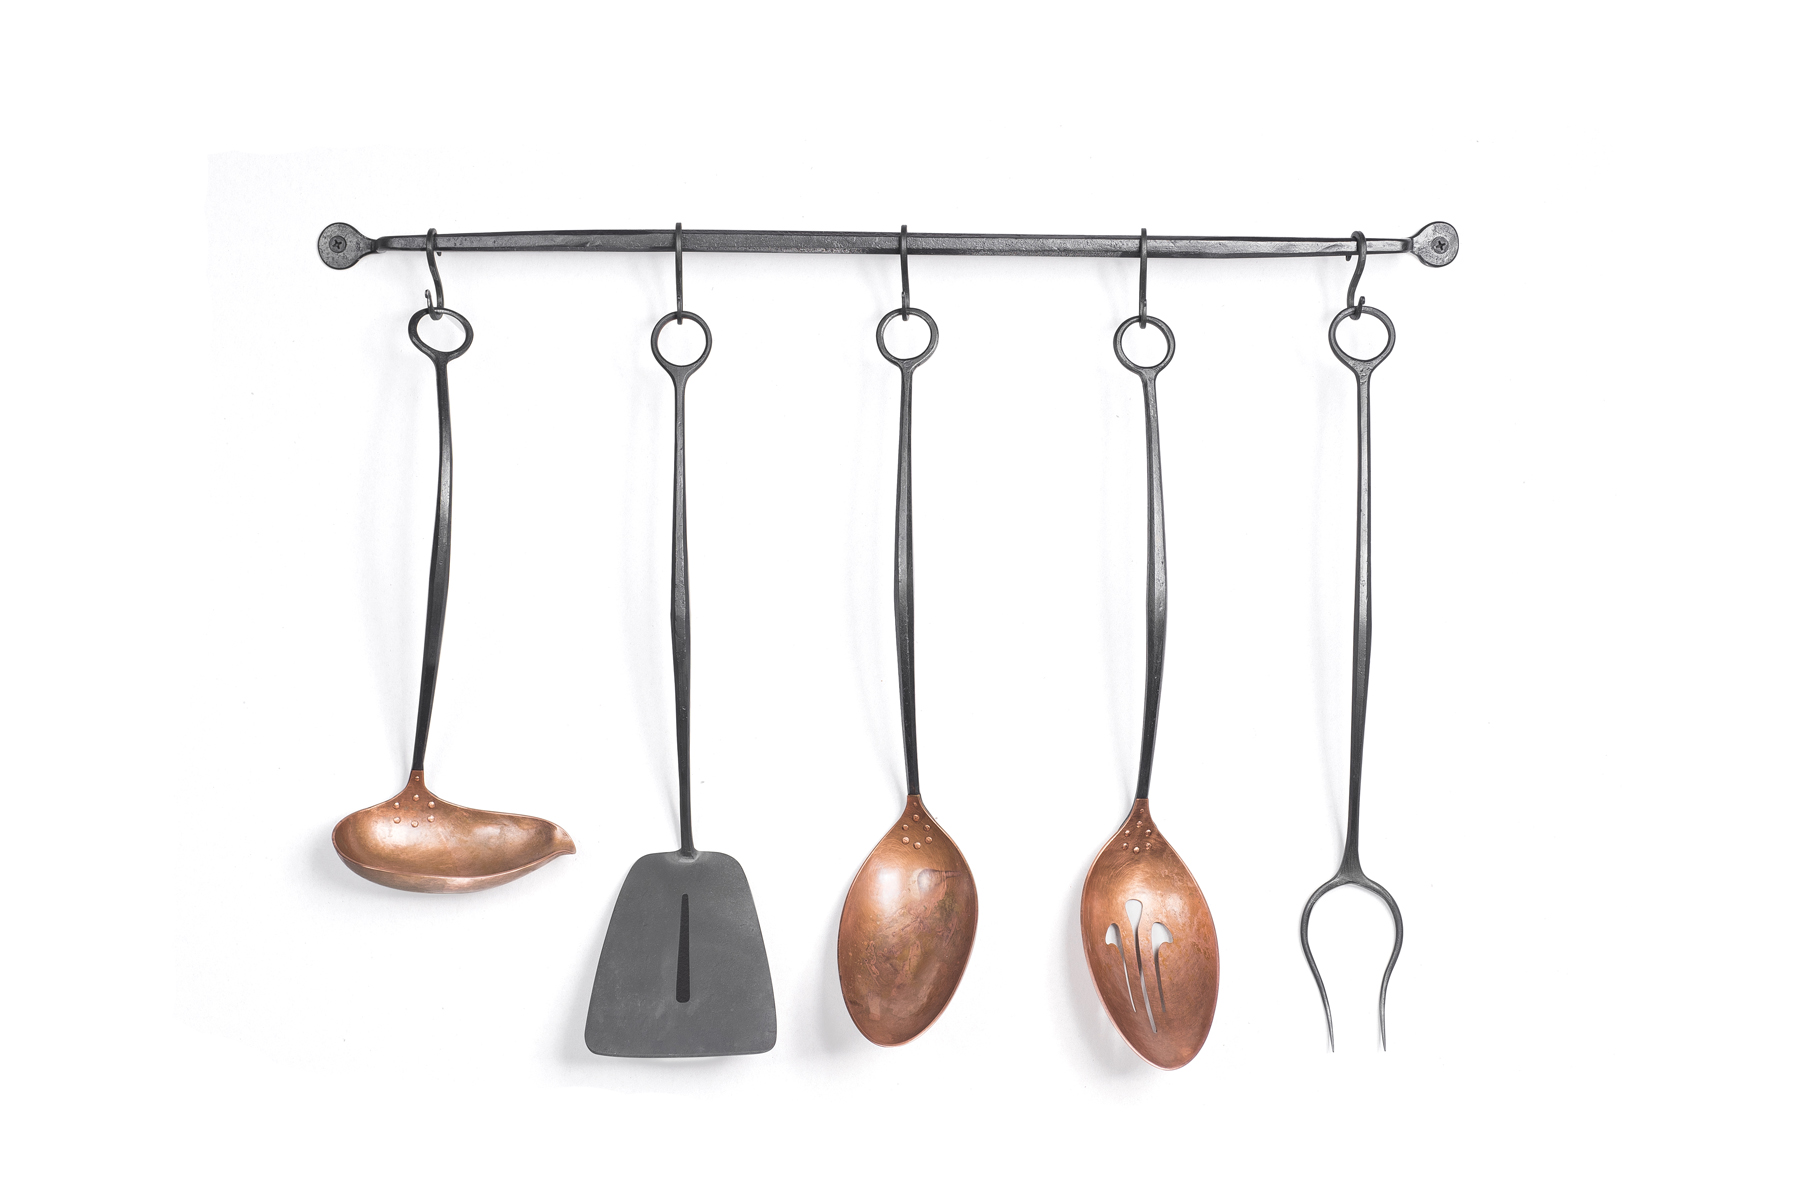 Smith Shop Signature Servingware Set:   Full set includes 3 copper and steel pieces - Serving Spoon, Slotted Spoon and Ladle; Steel Spatula and Meat Fork; Steel Hanging Bar and S-Hooks.